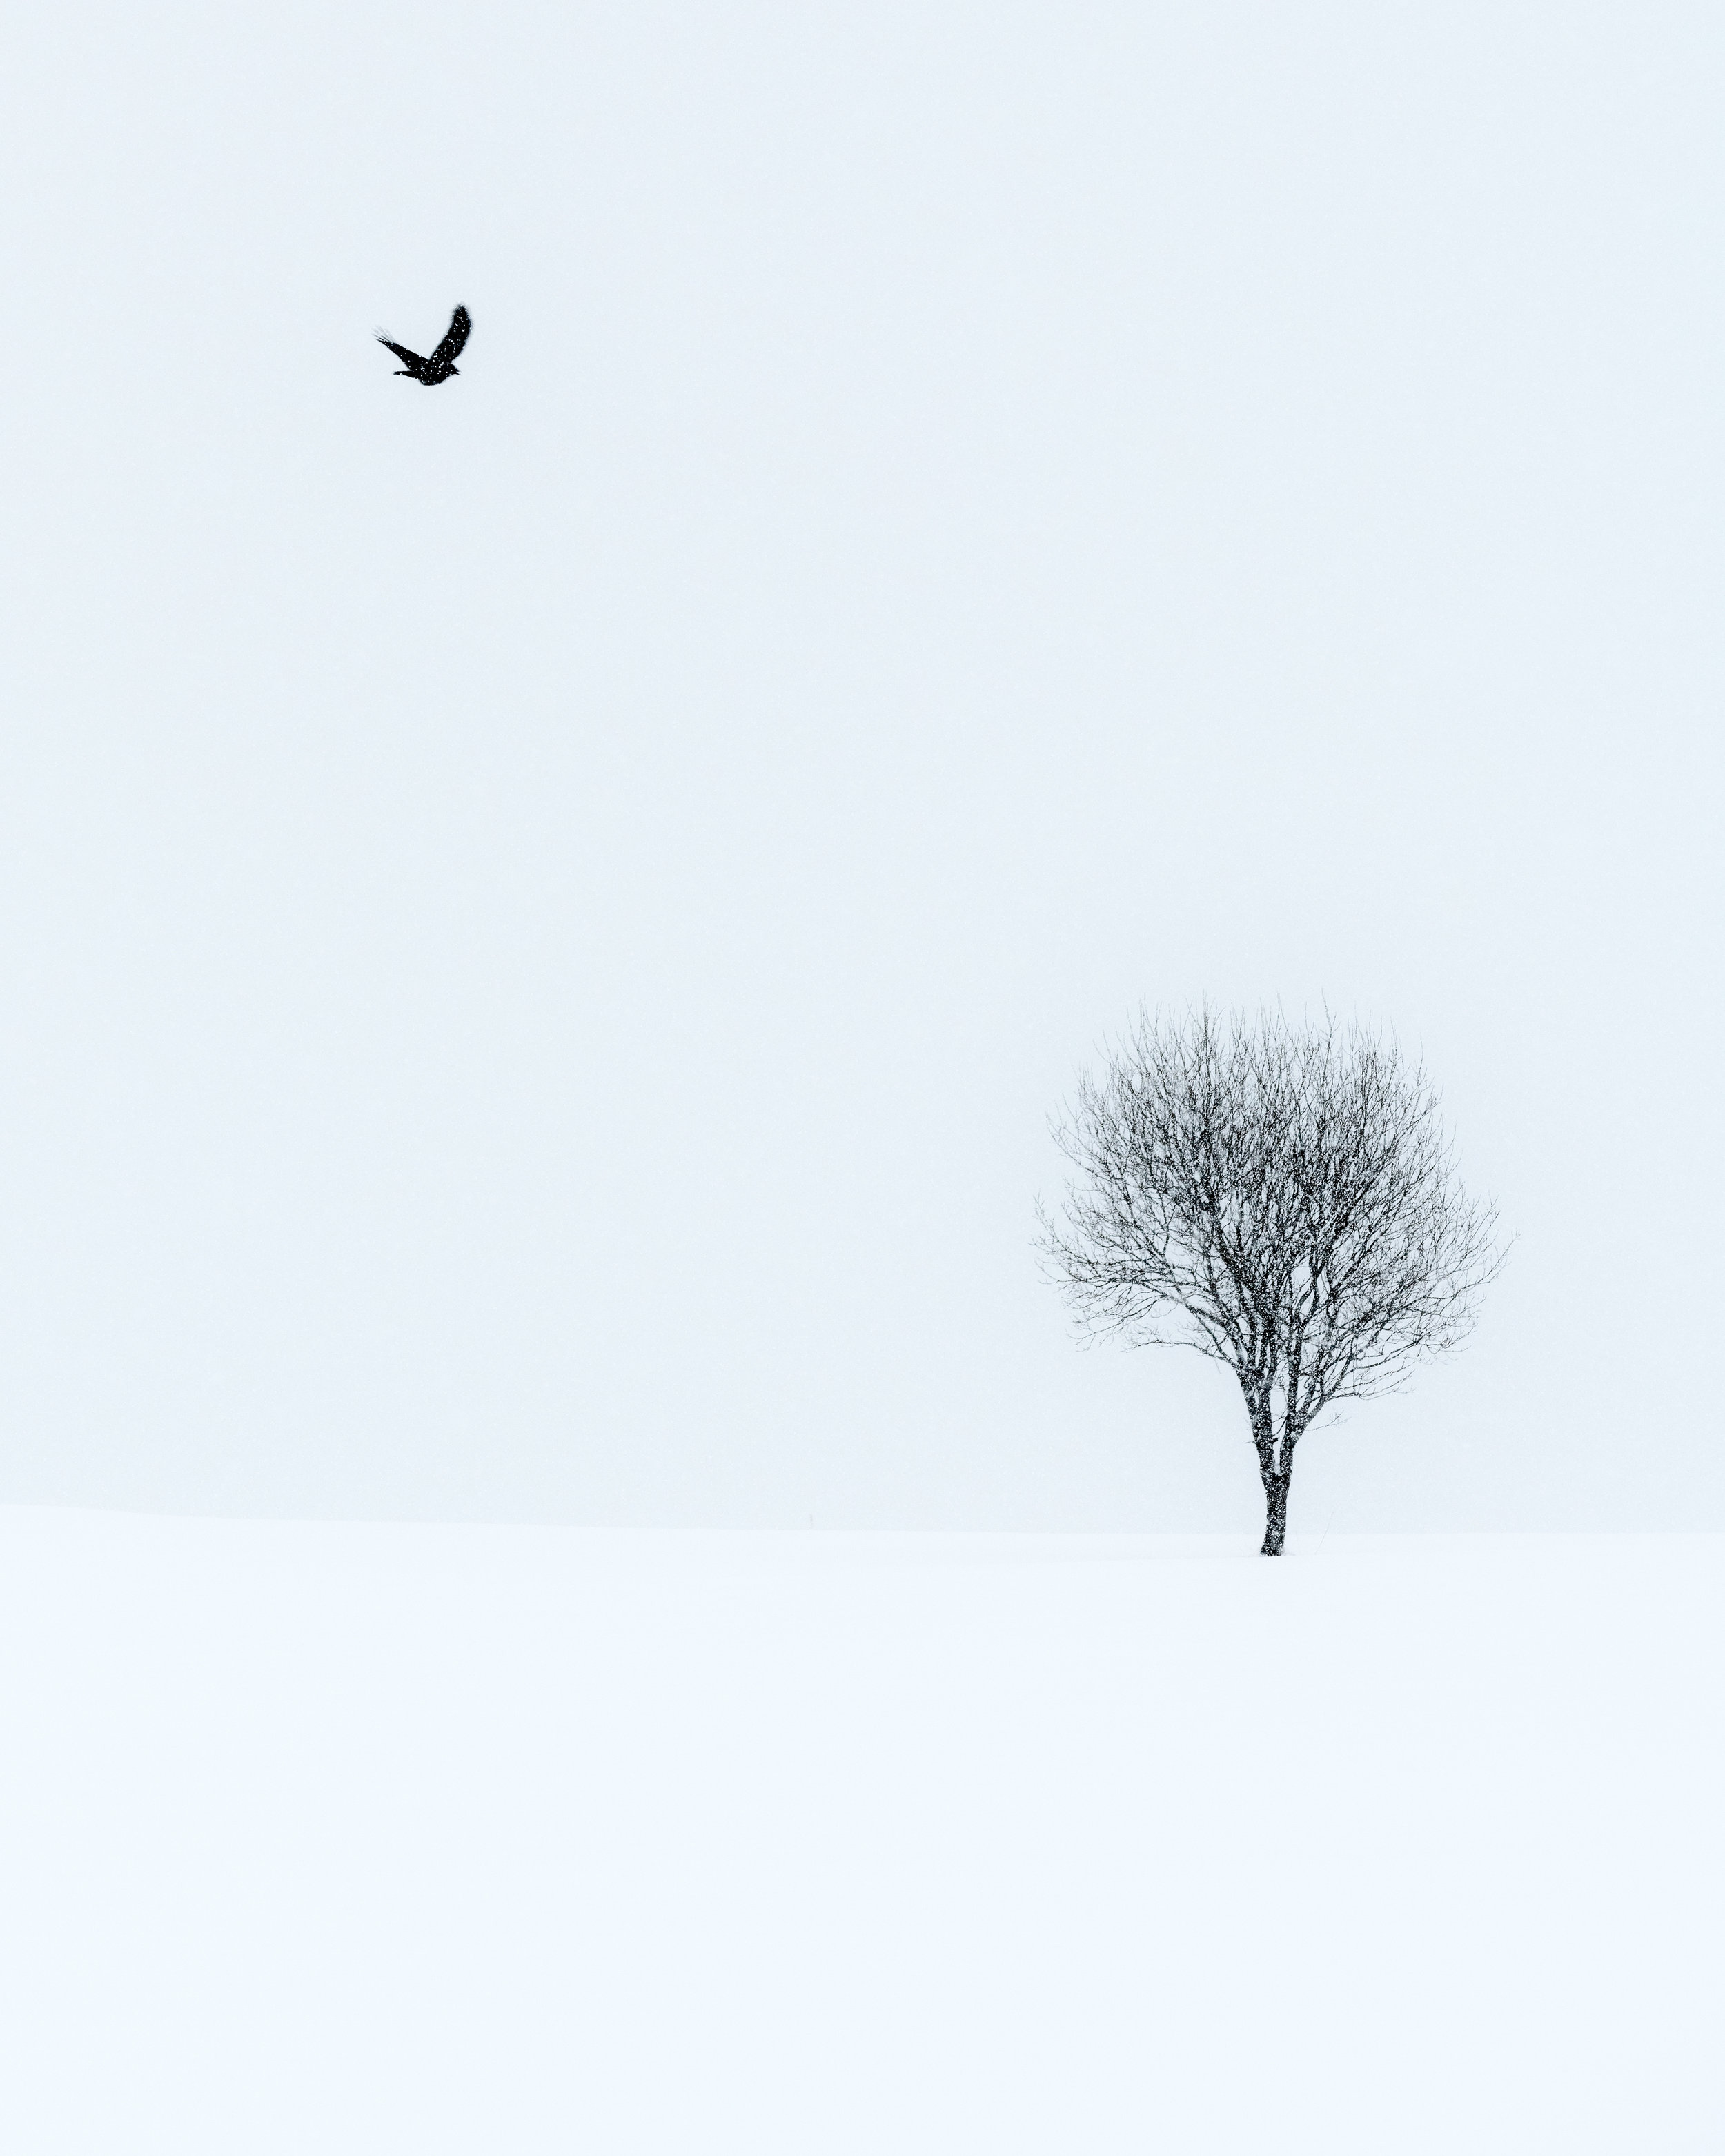 'Solitary' - taken during a heavy snow storm near Leknes.